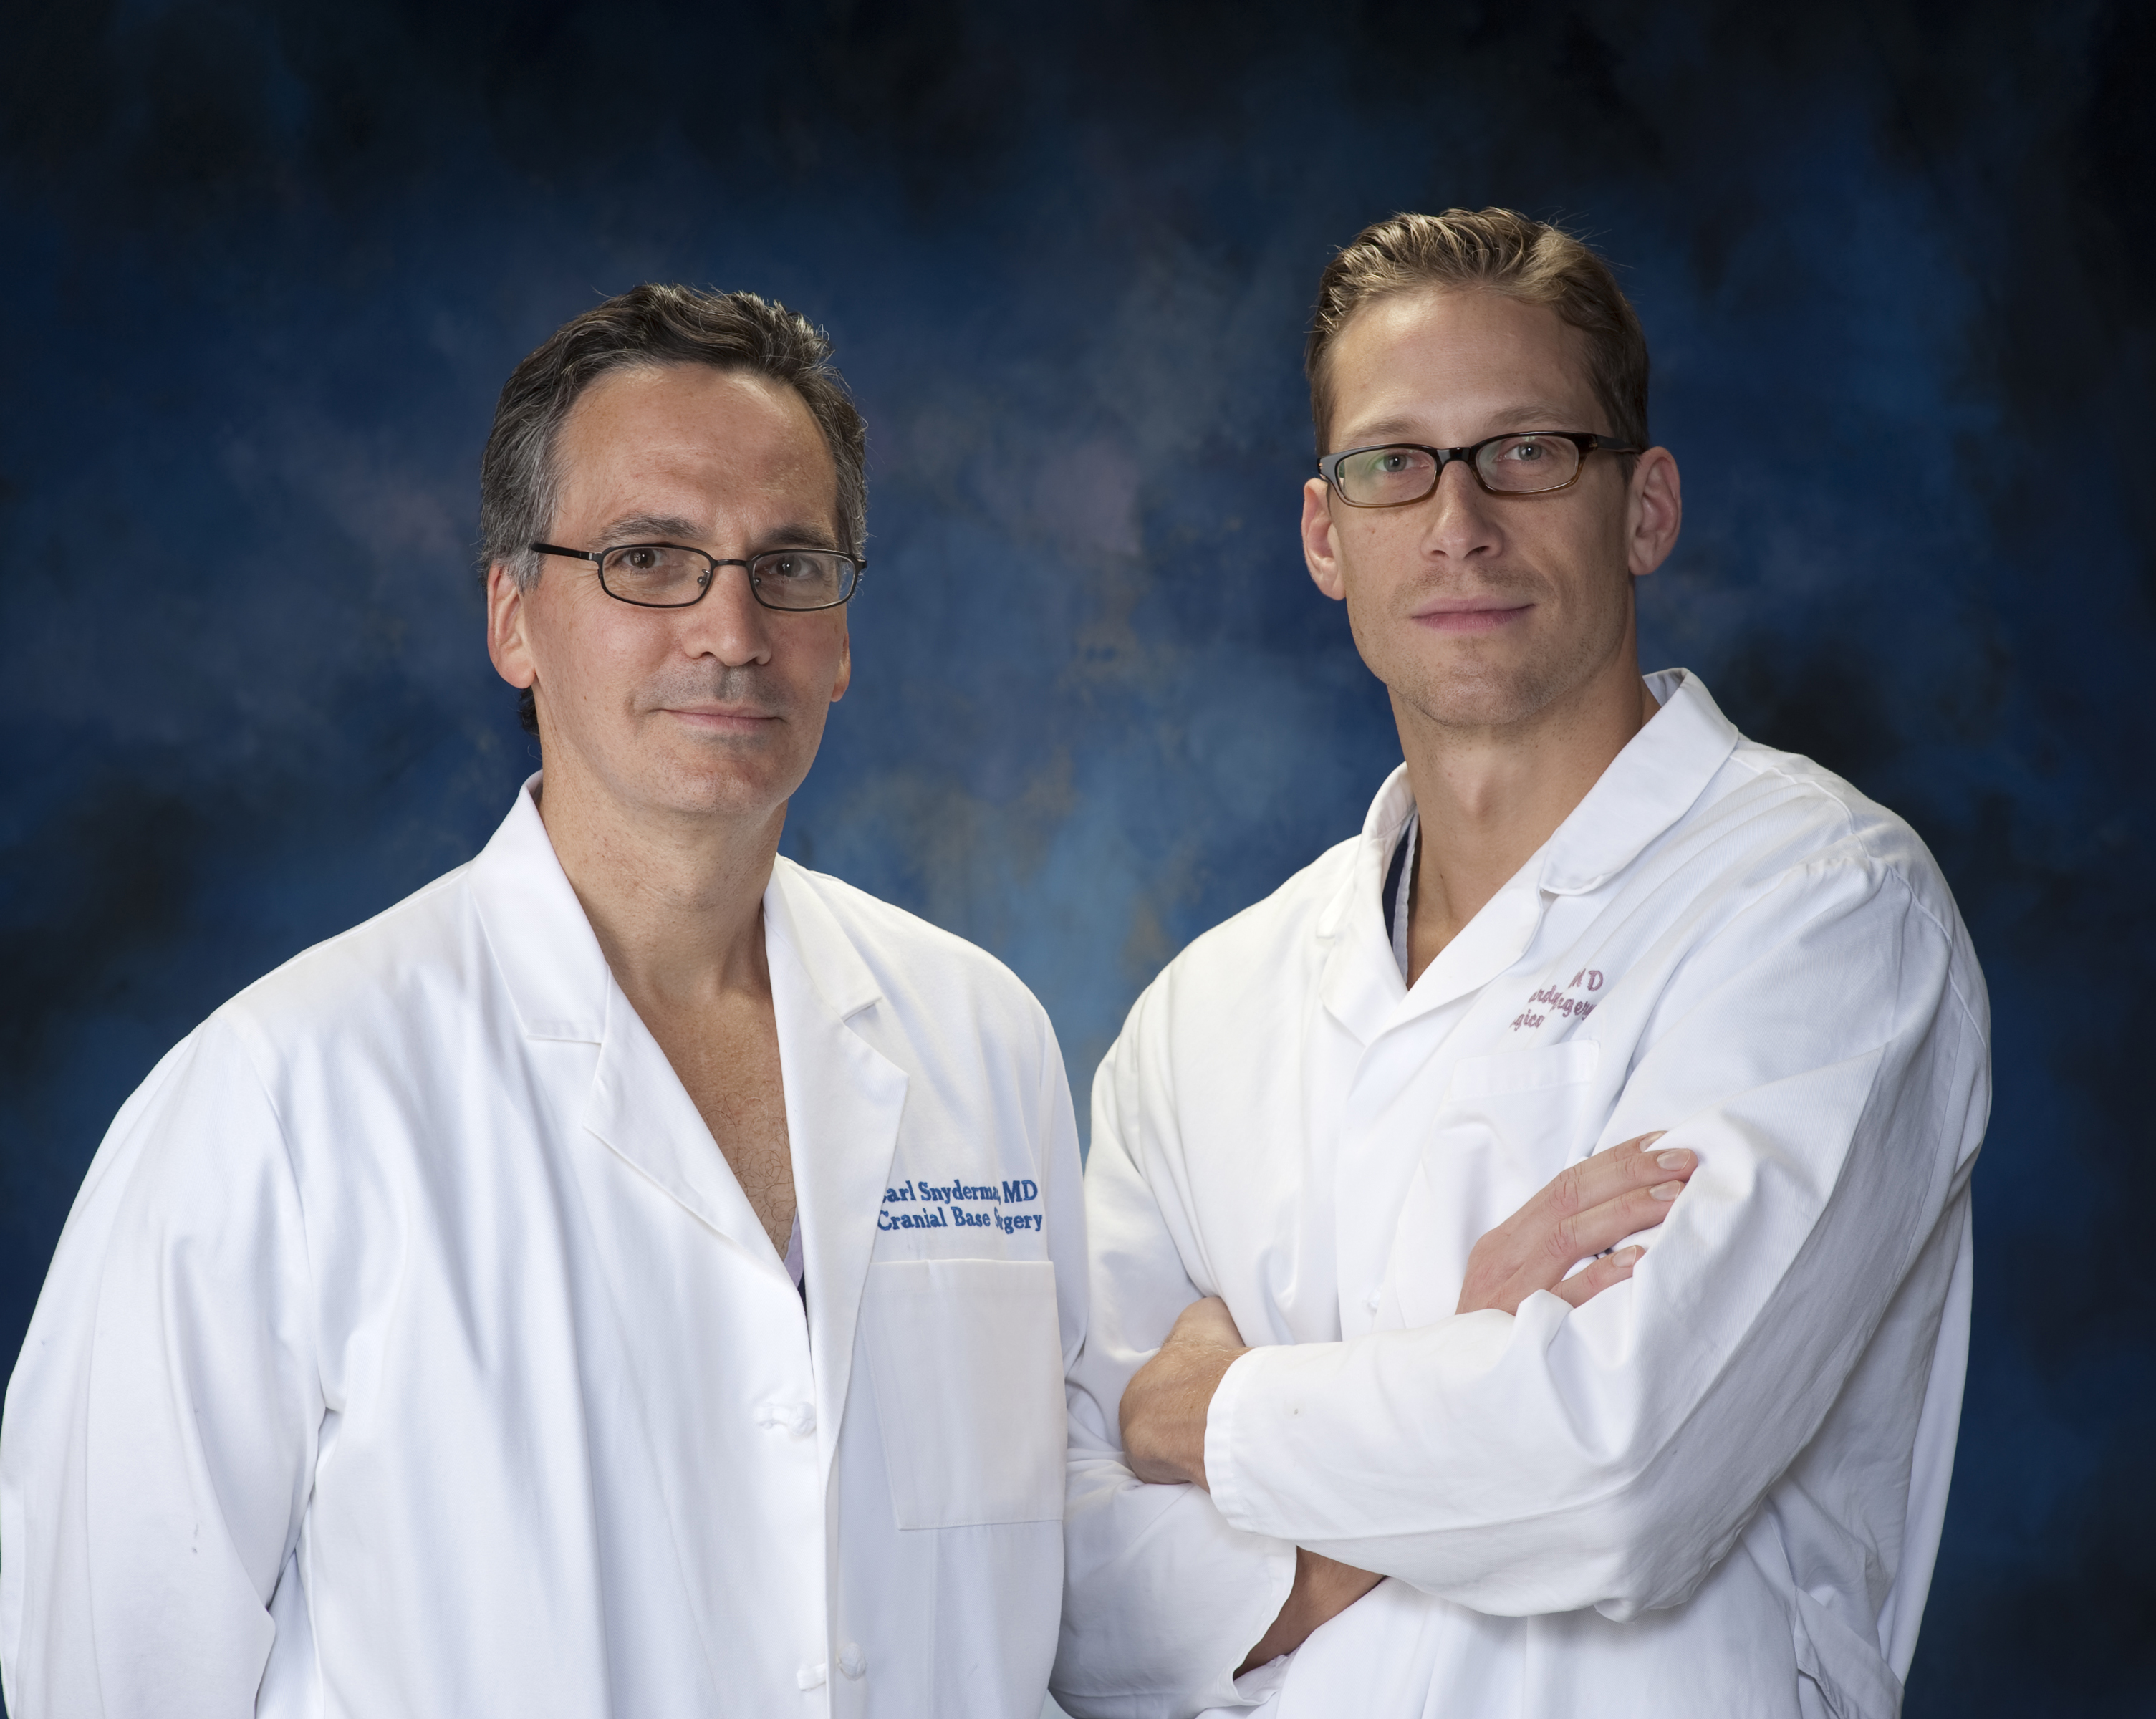 Drs. Snyderman and Gardner